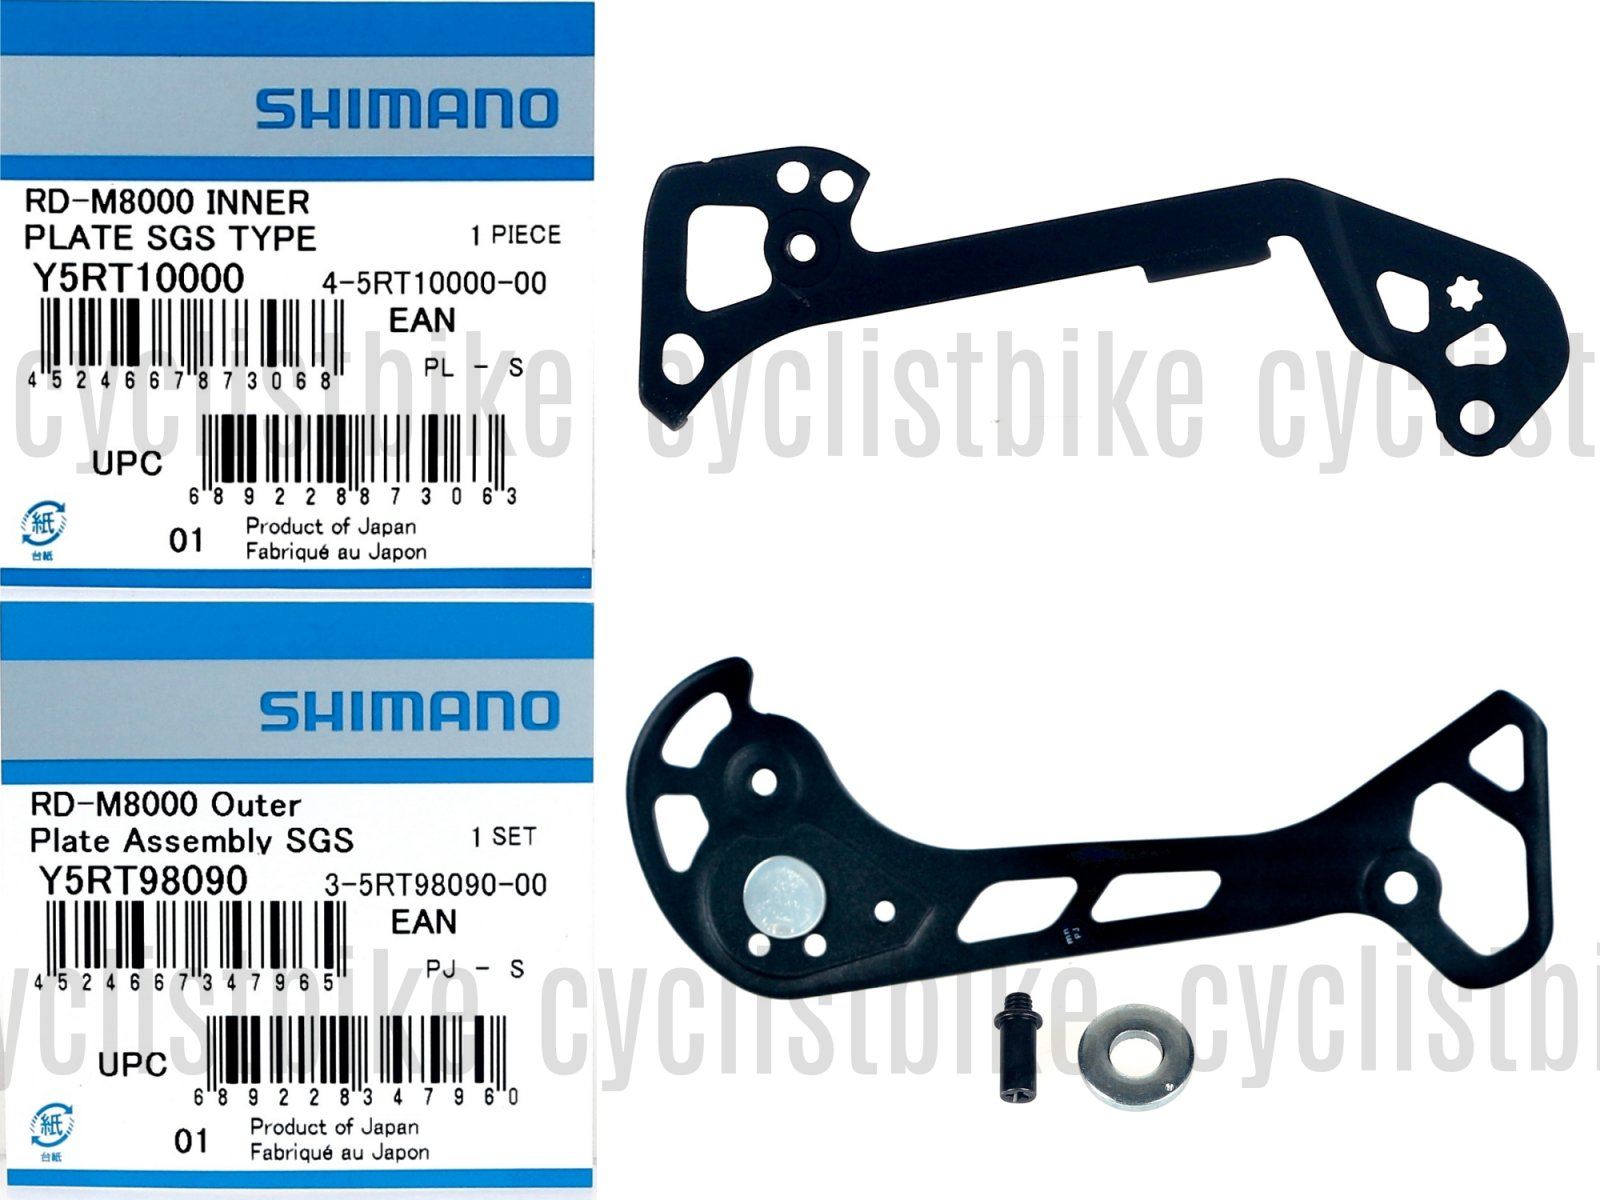 Shimano Deore XT RD-M8000-SGS RD Cage Set Plate for Super Long Cage NIB